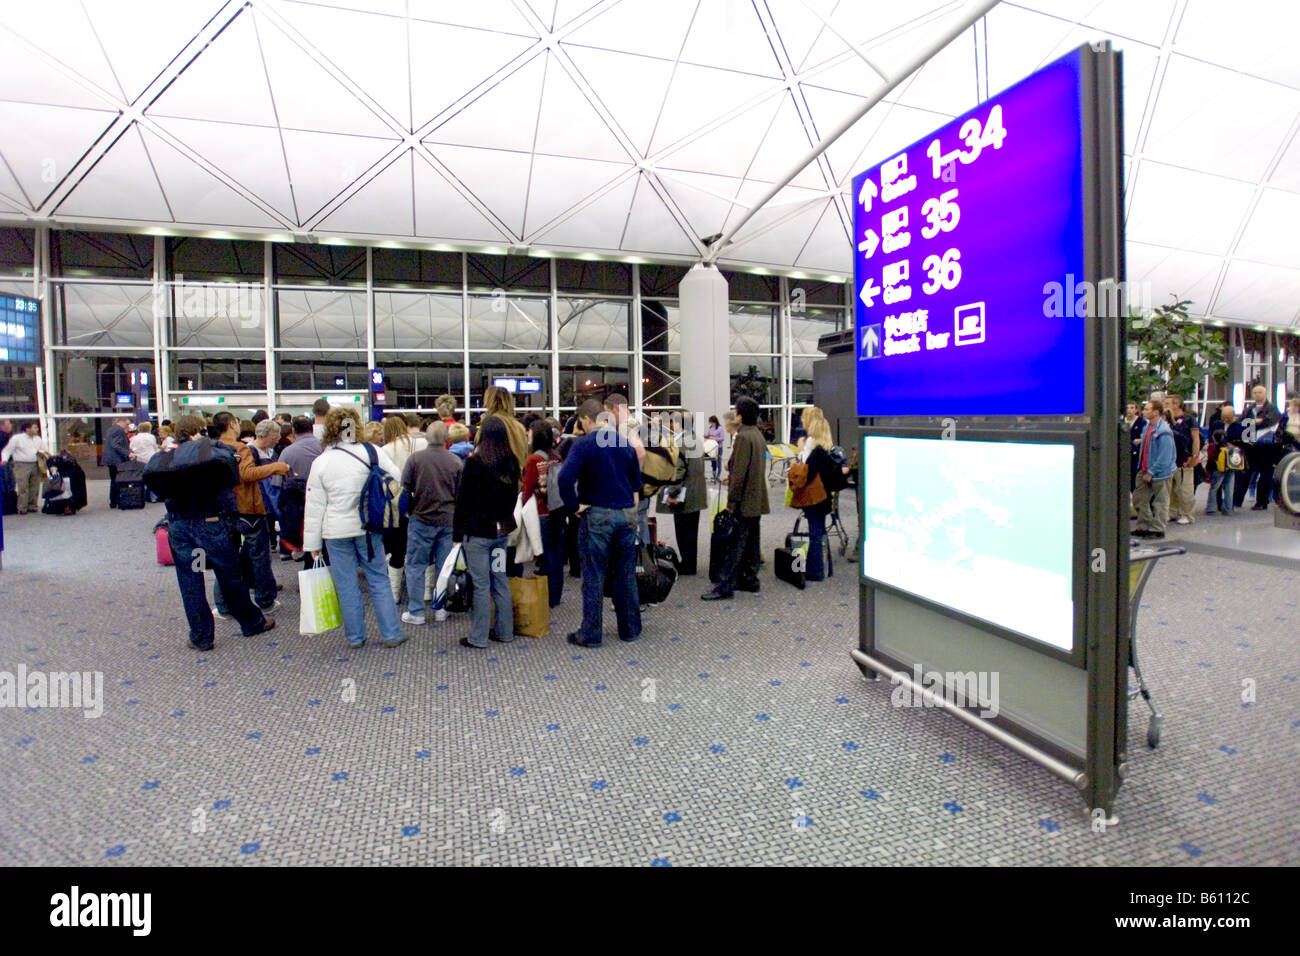 Wide angle view of passengers queing at a departure gate in Chek Lap Kok airport, Hong Kong. - Stock Image